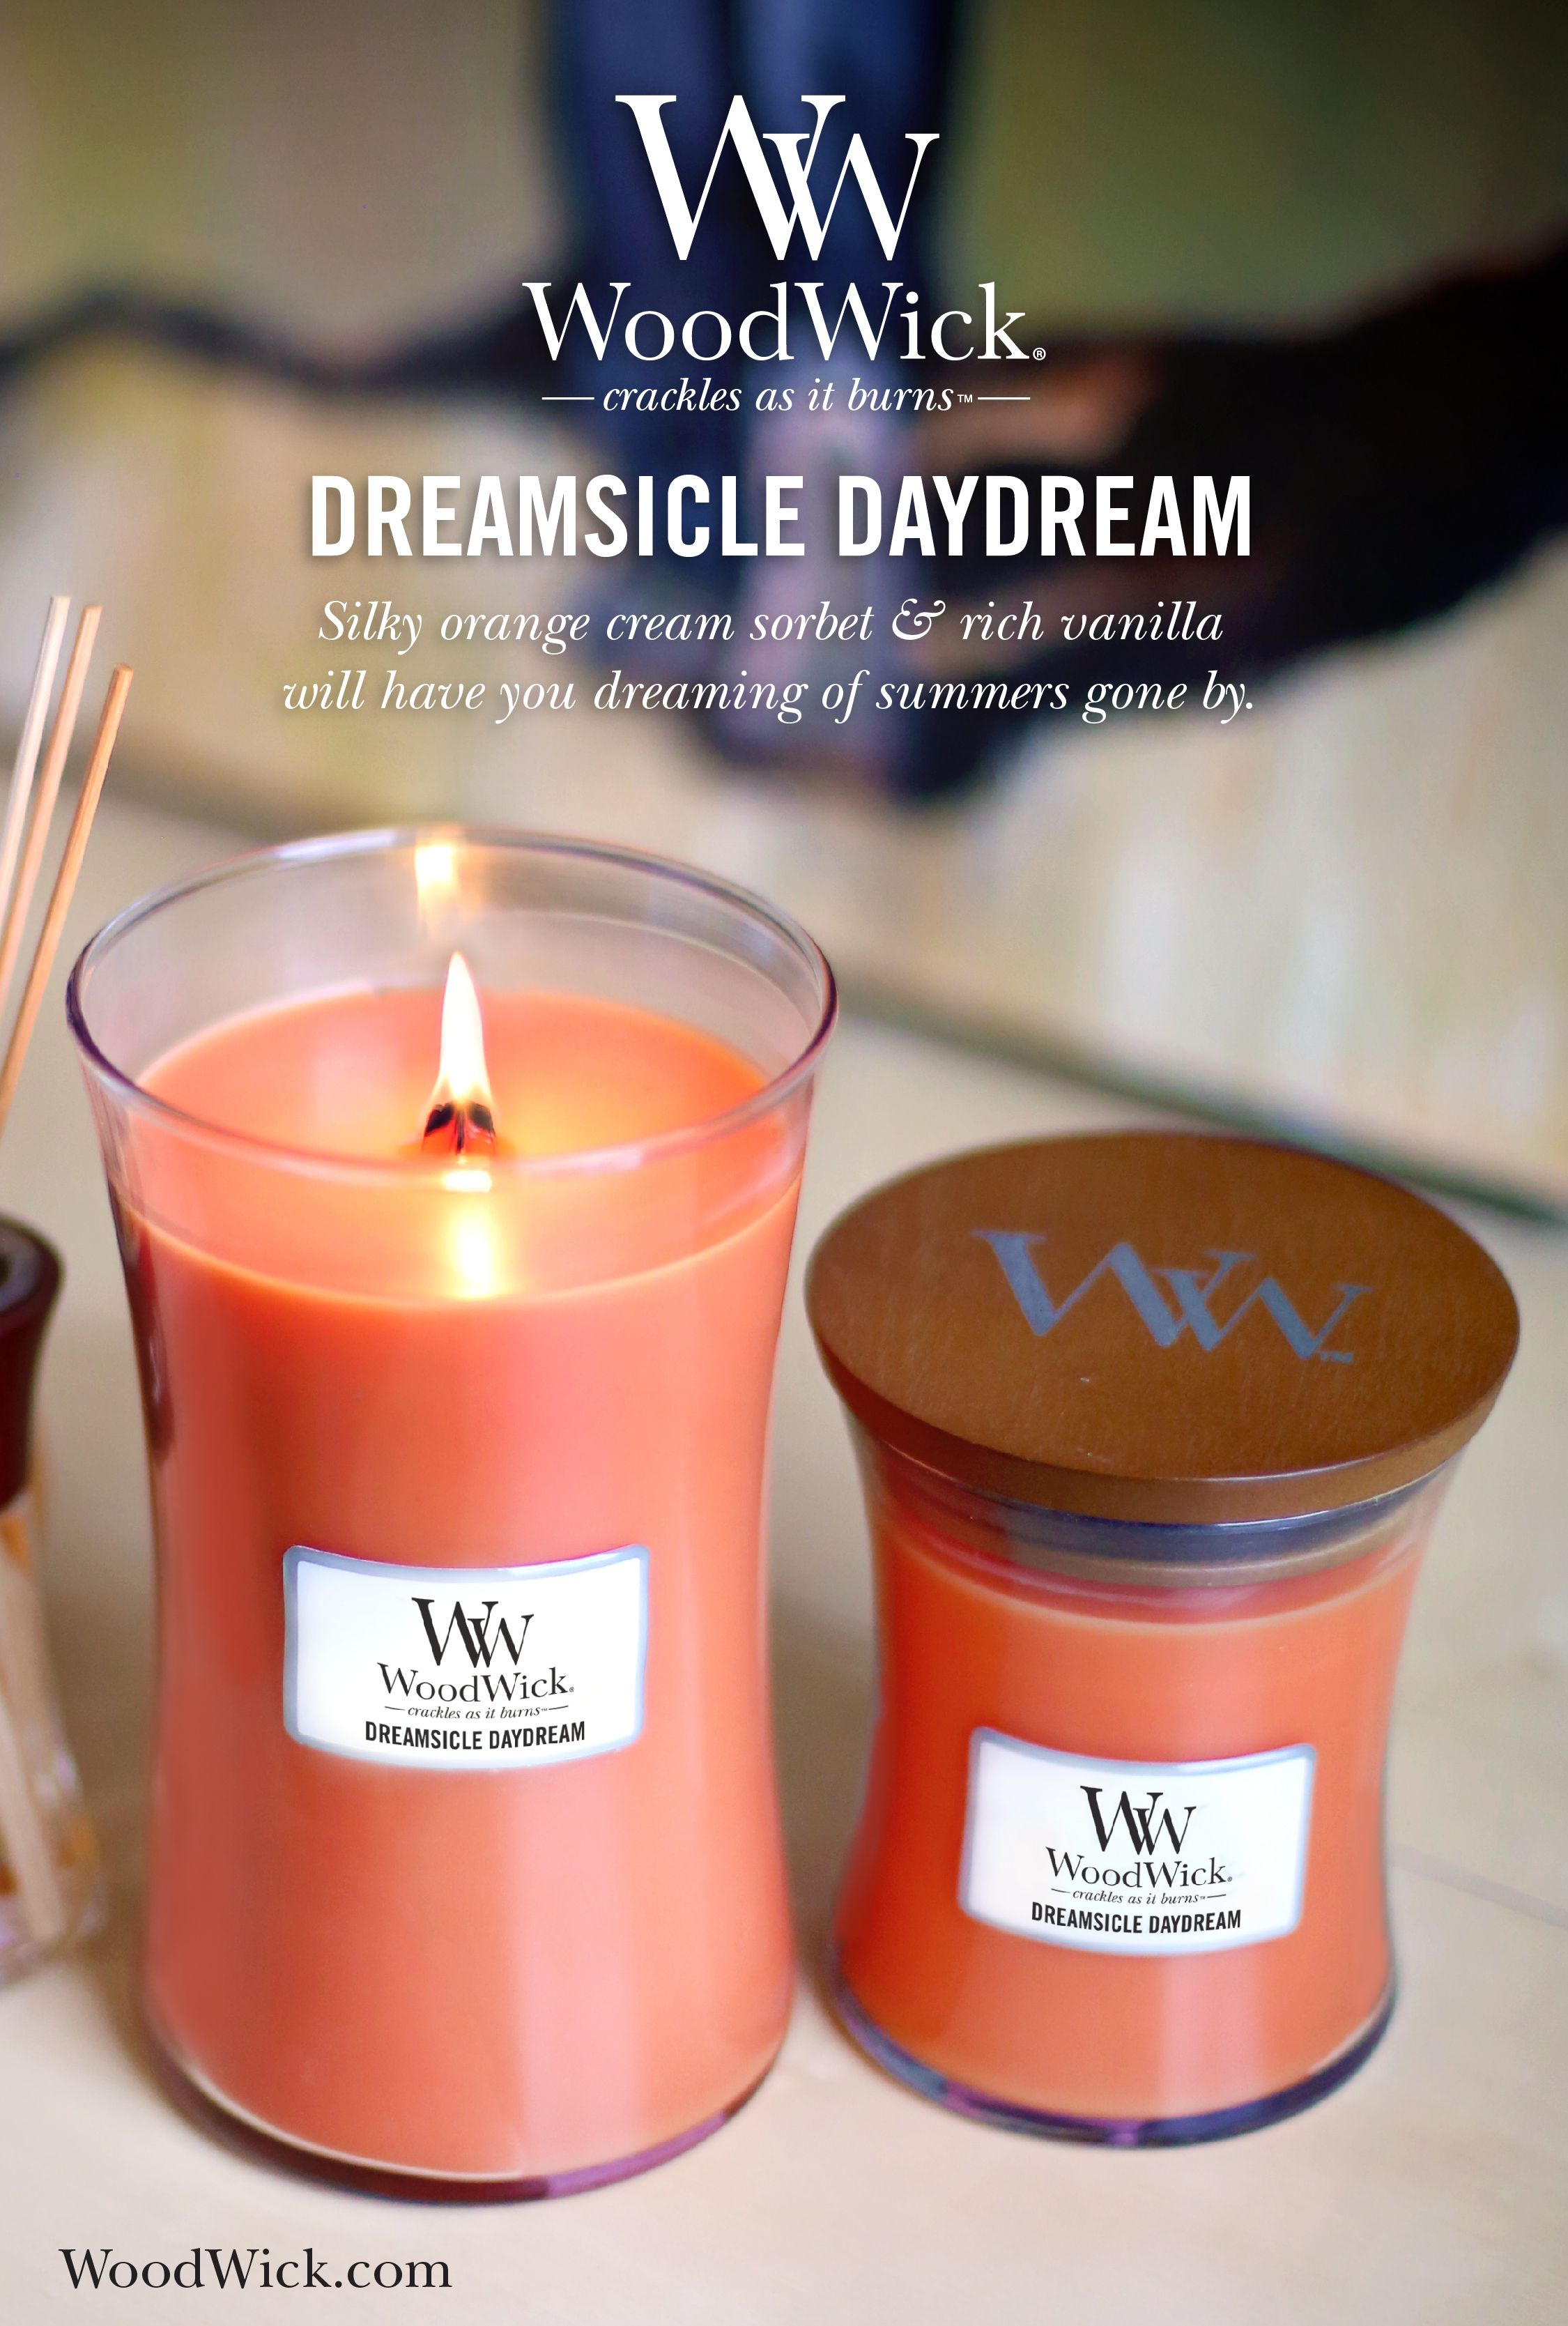 Dreamsicle Daydream By Woodwick The Natural Wooden Wick Candle